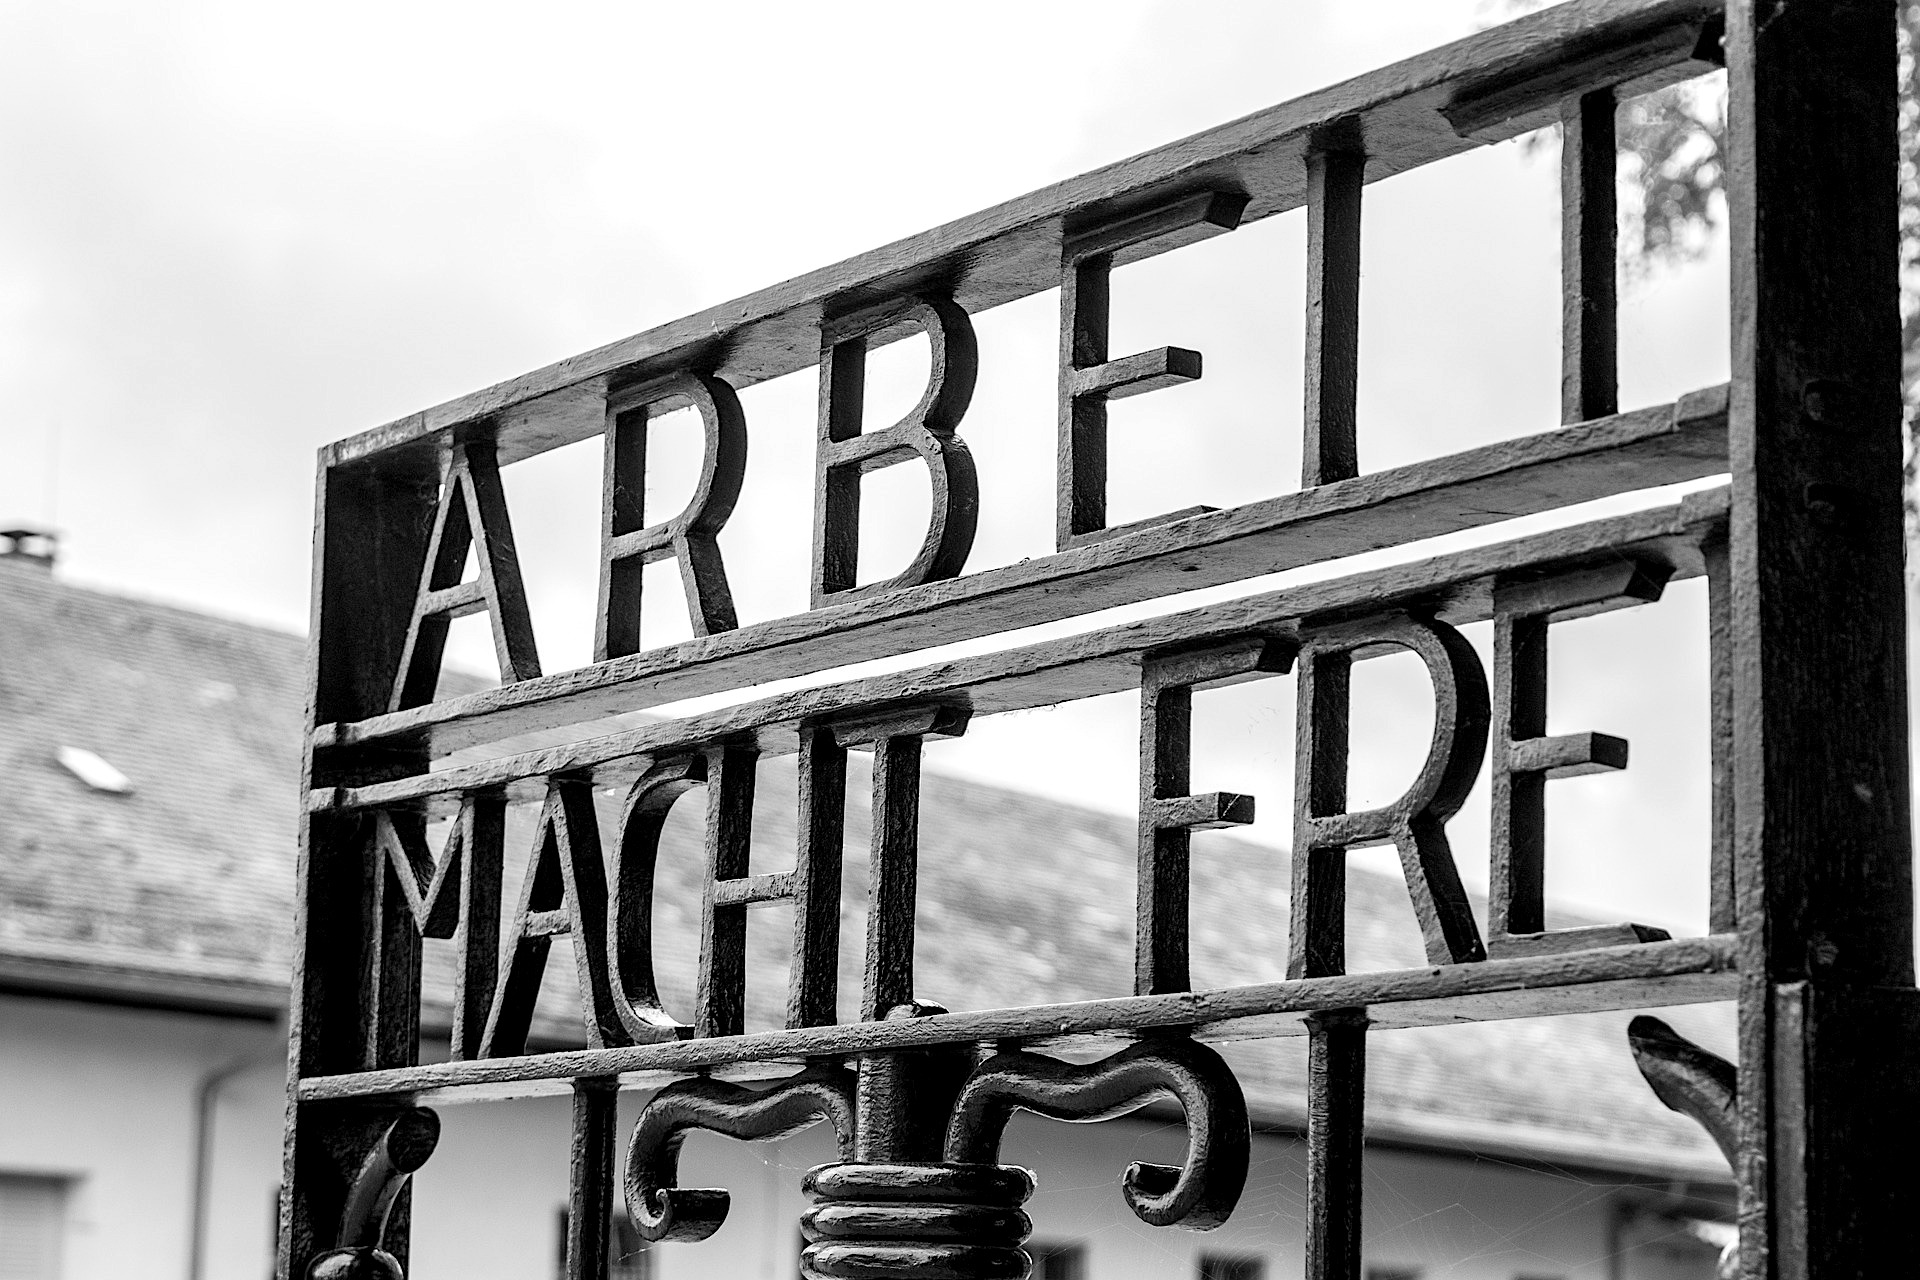 dachau, concentration camp, WW II, WW 2, Nazi, Jews, history, arbeit macht frei, private tour